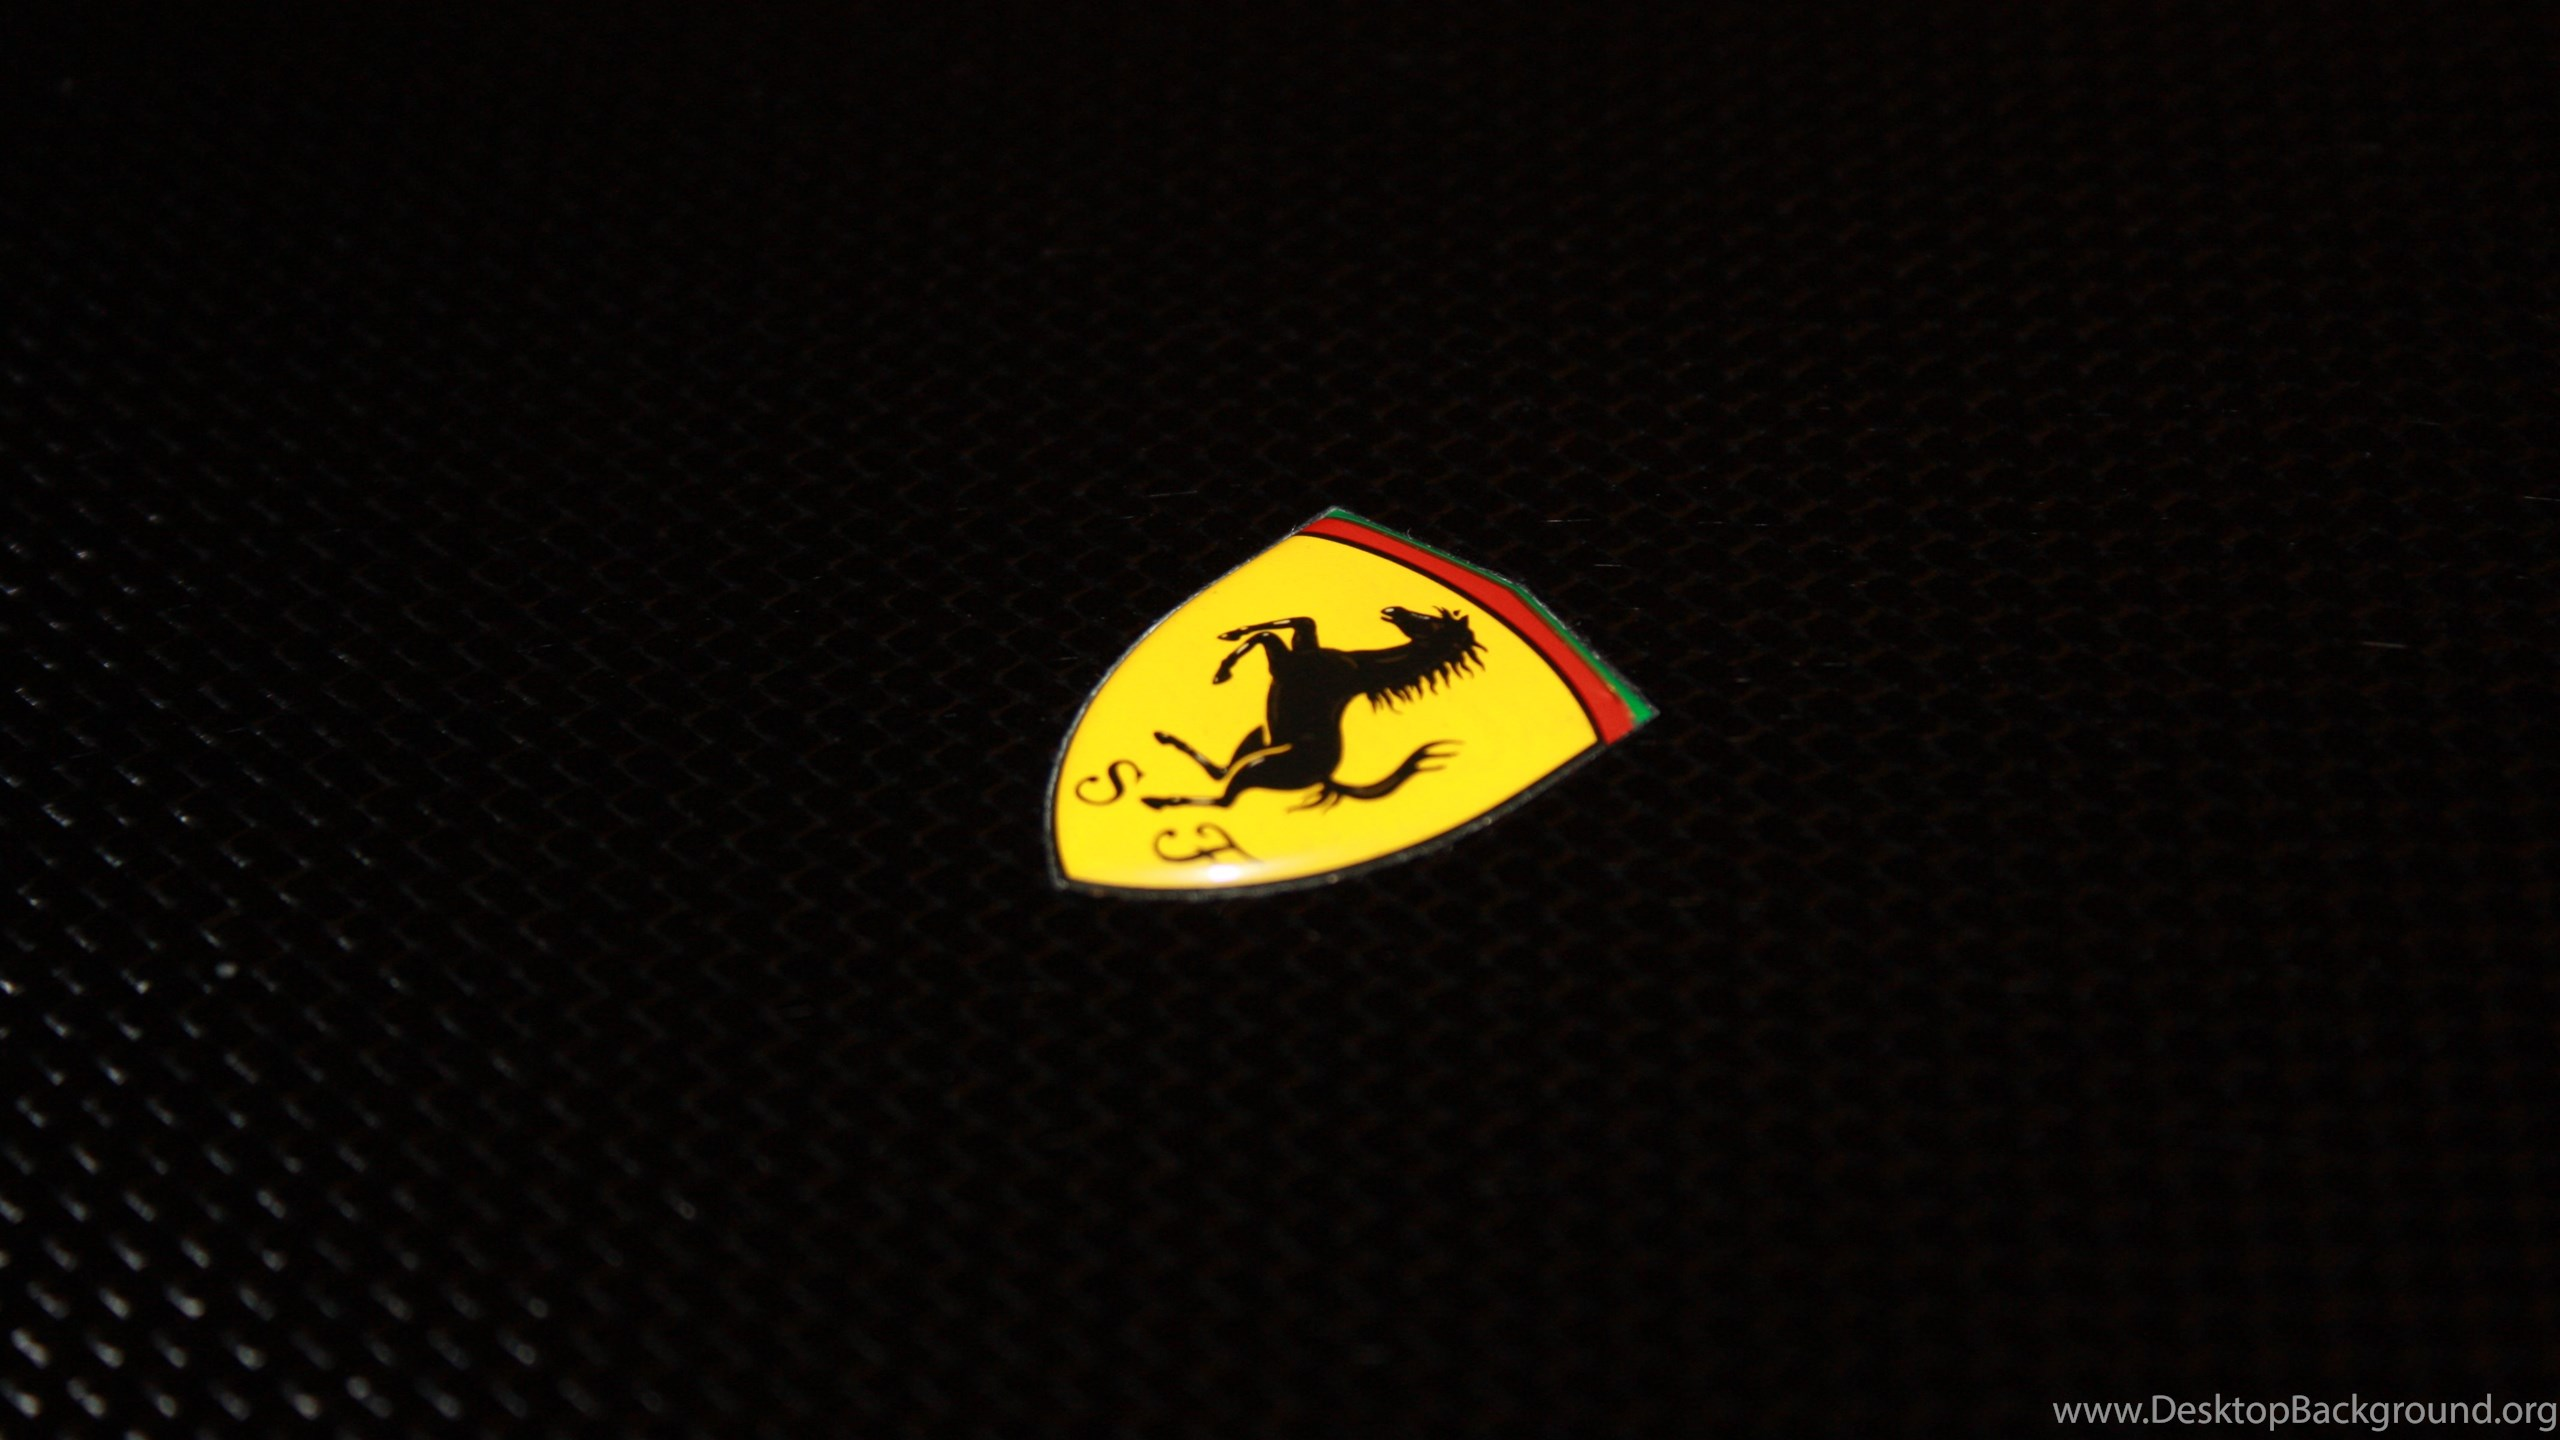 3d Touch Wallpaper For Android Download Ferrari Logo Wallpapers Wide Desktop Background